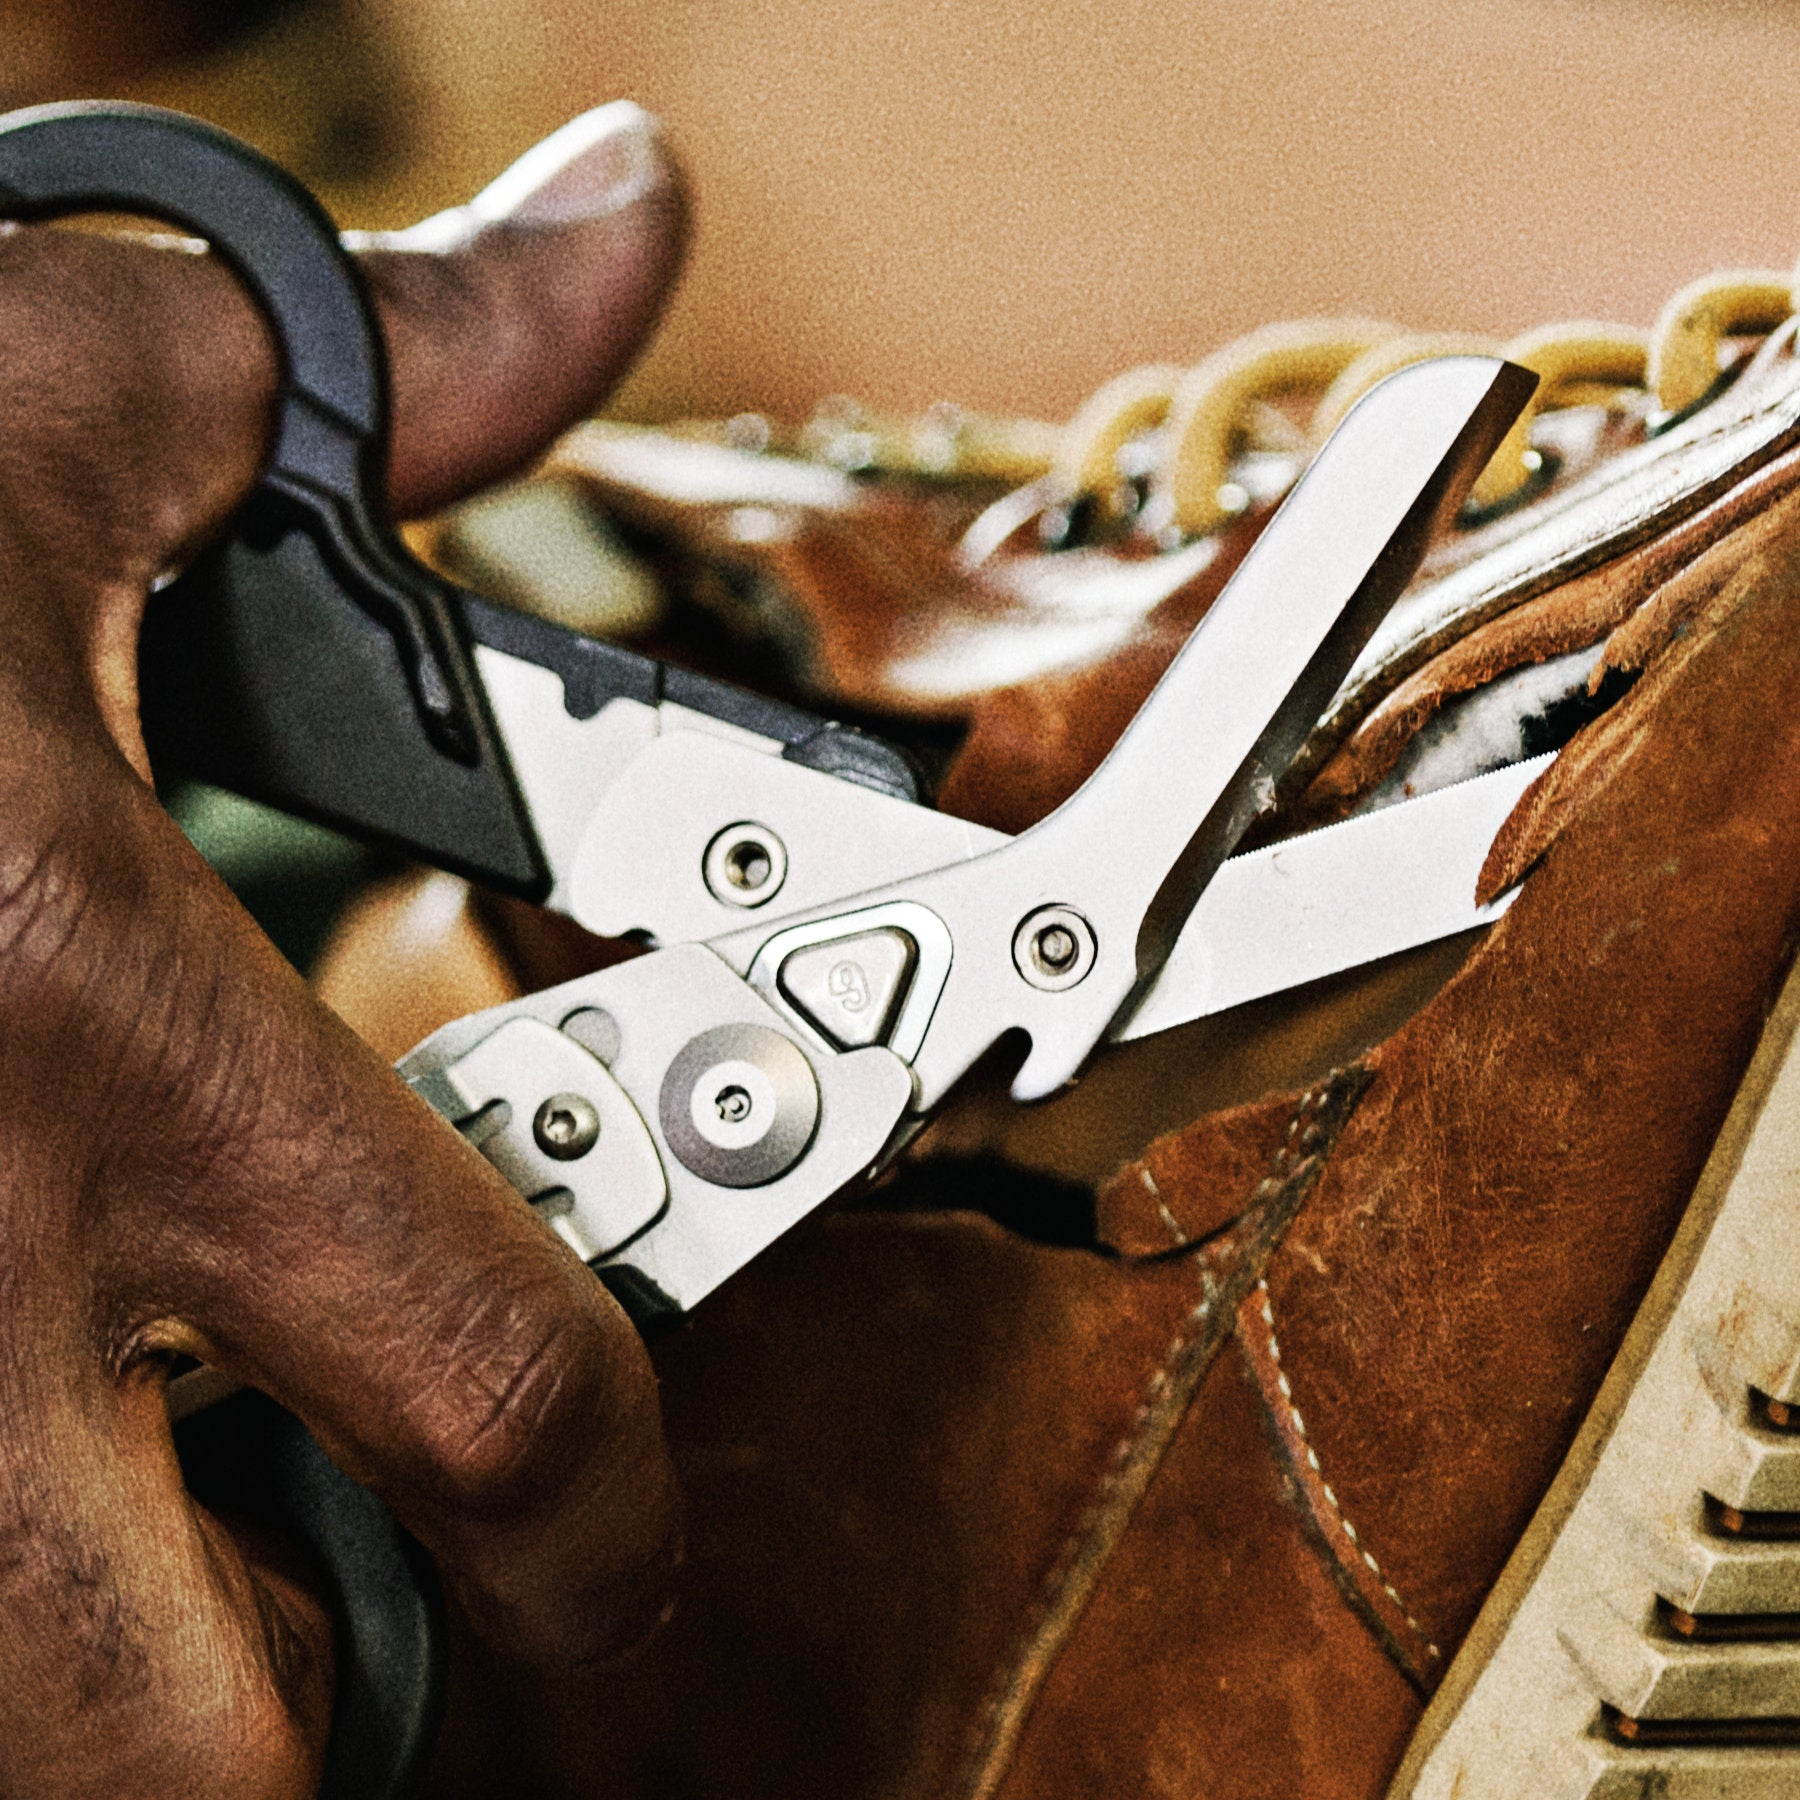 Leatherman Emergency Tools at Swiss Knife Shop